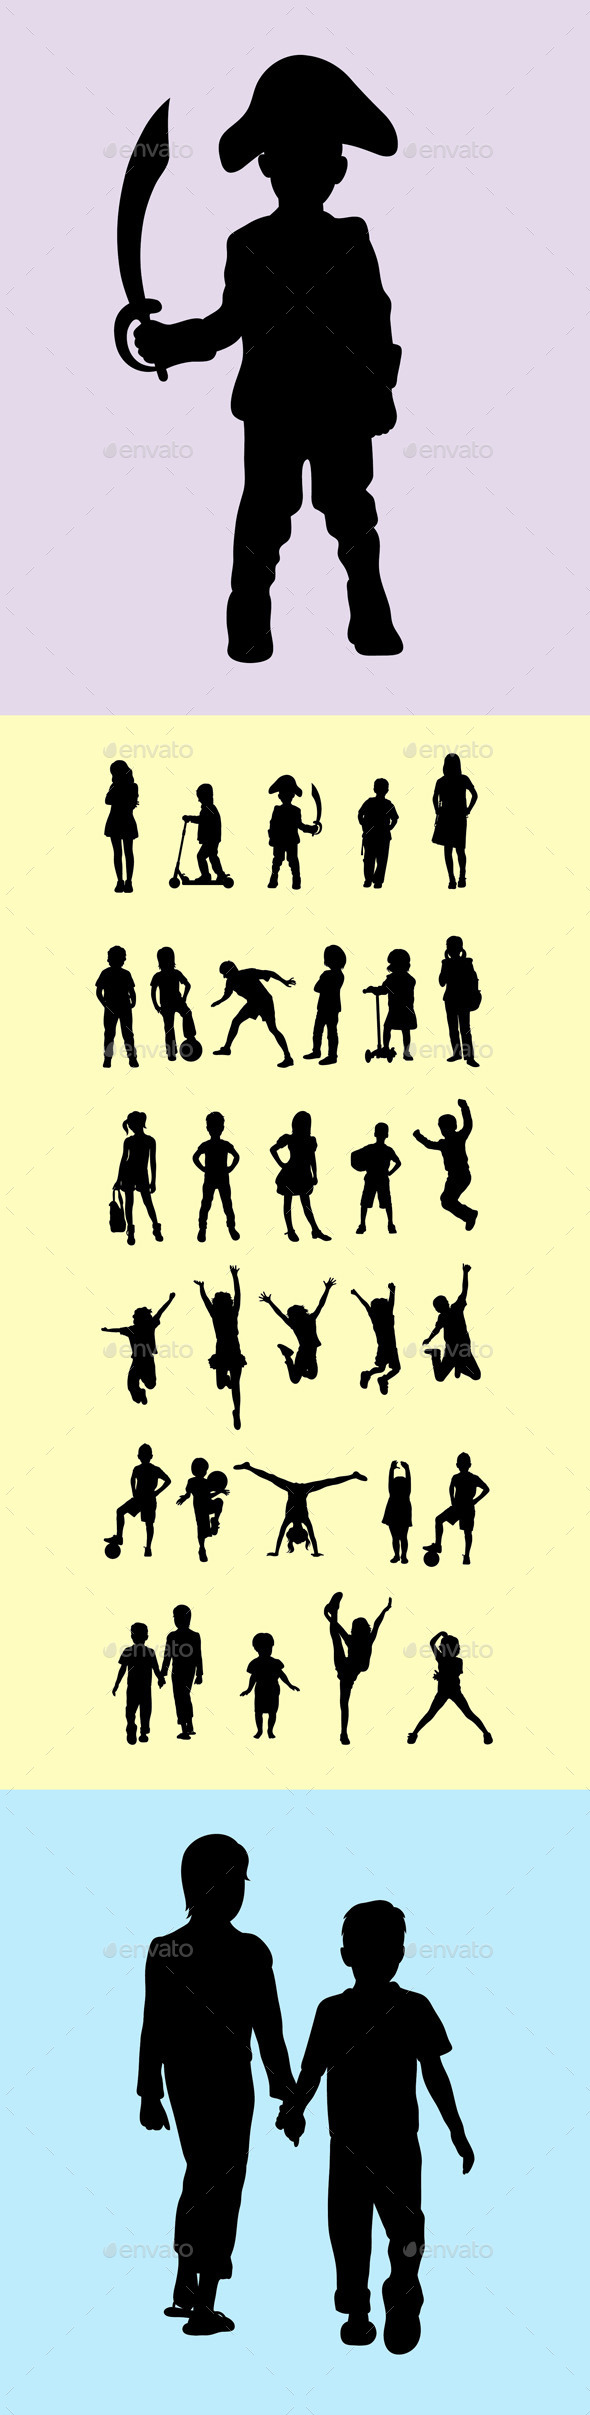 Children Silhouettes - People Characters